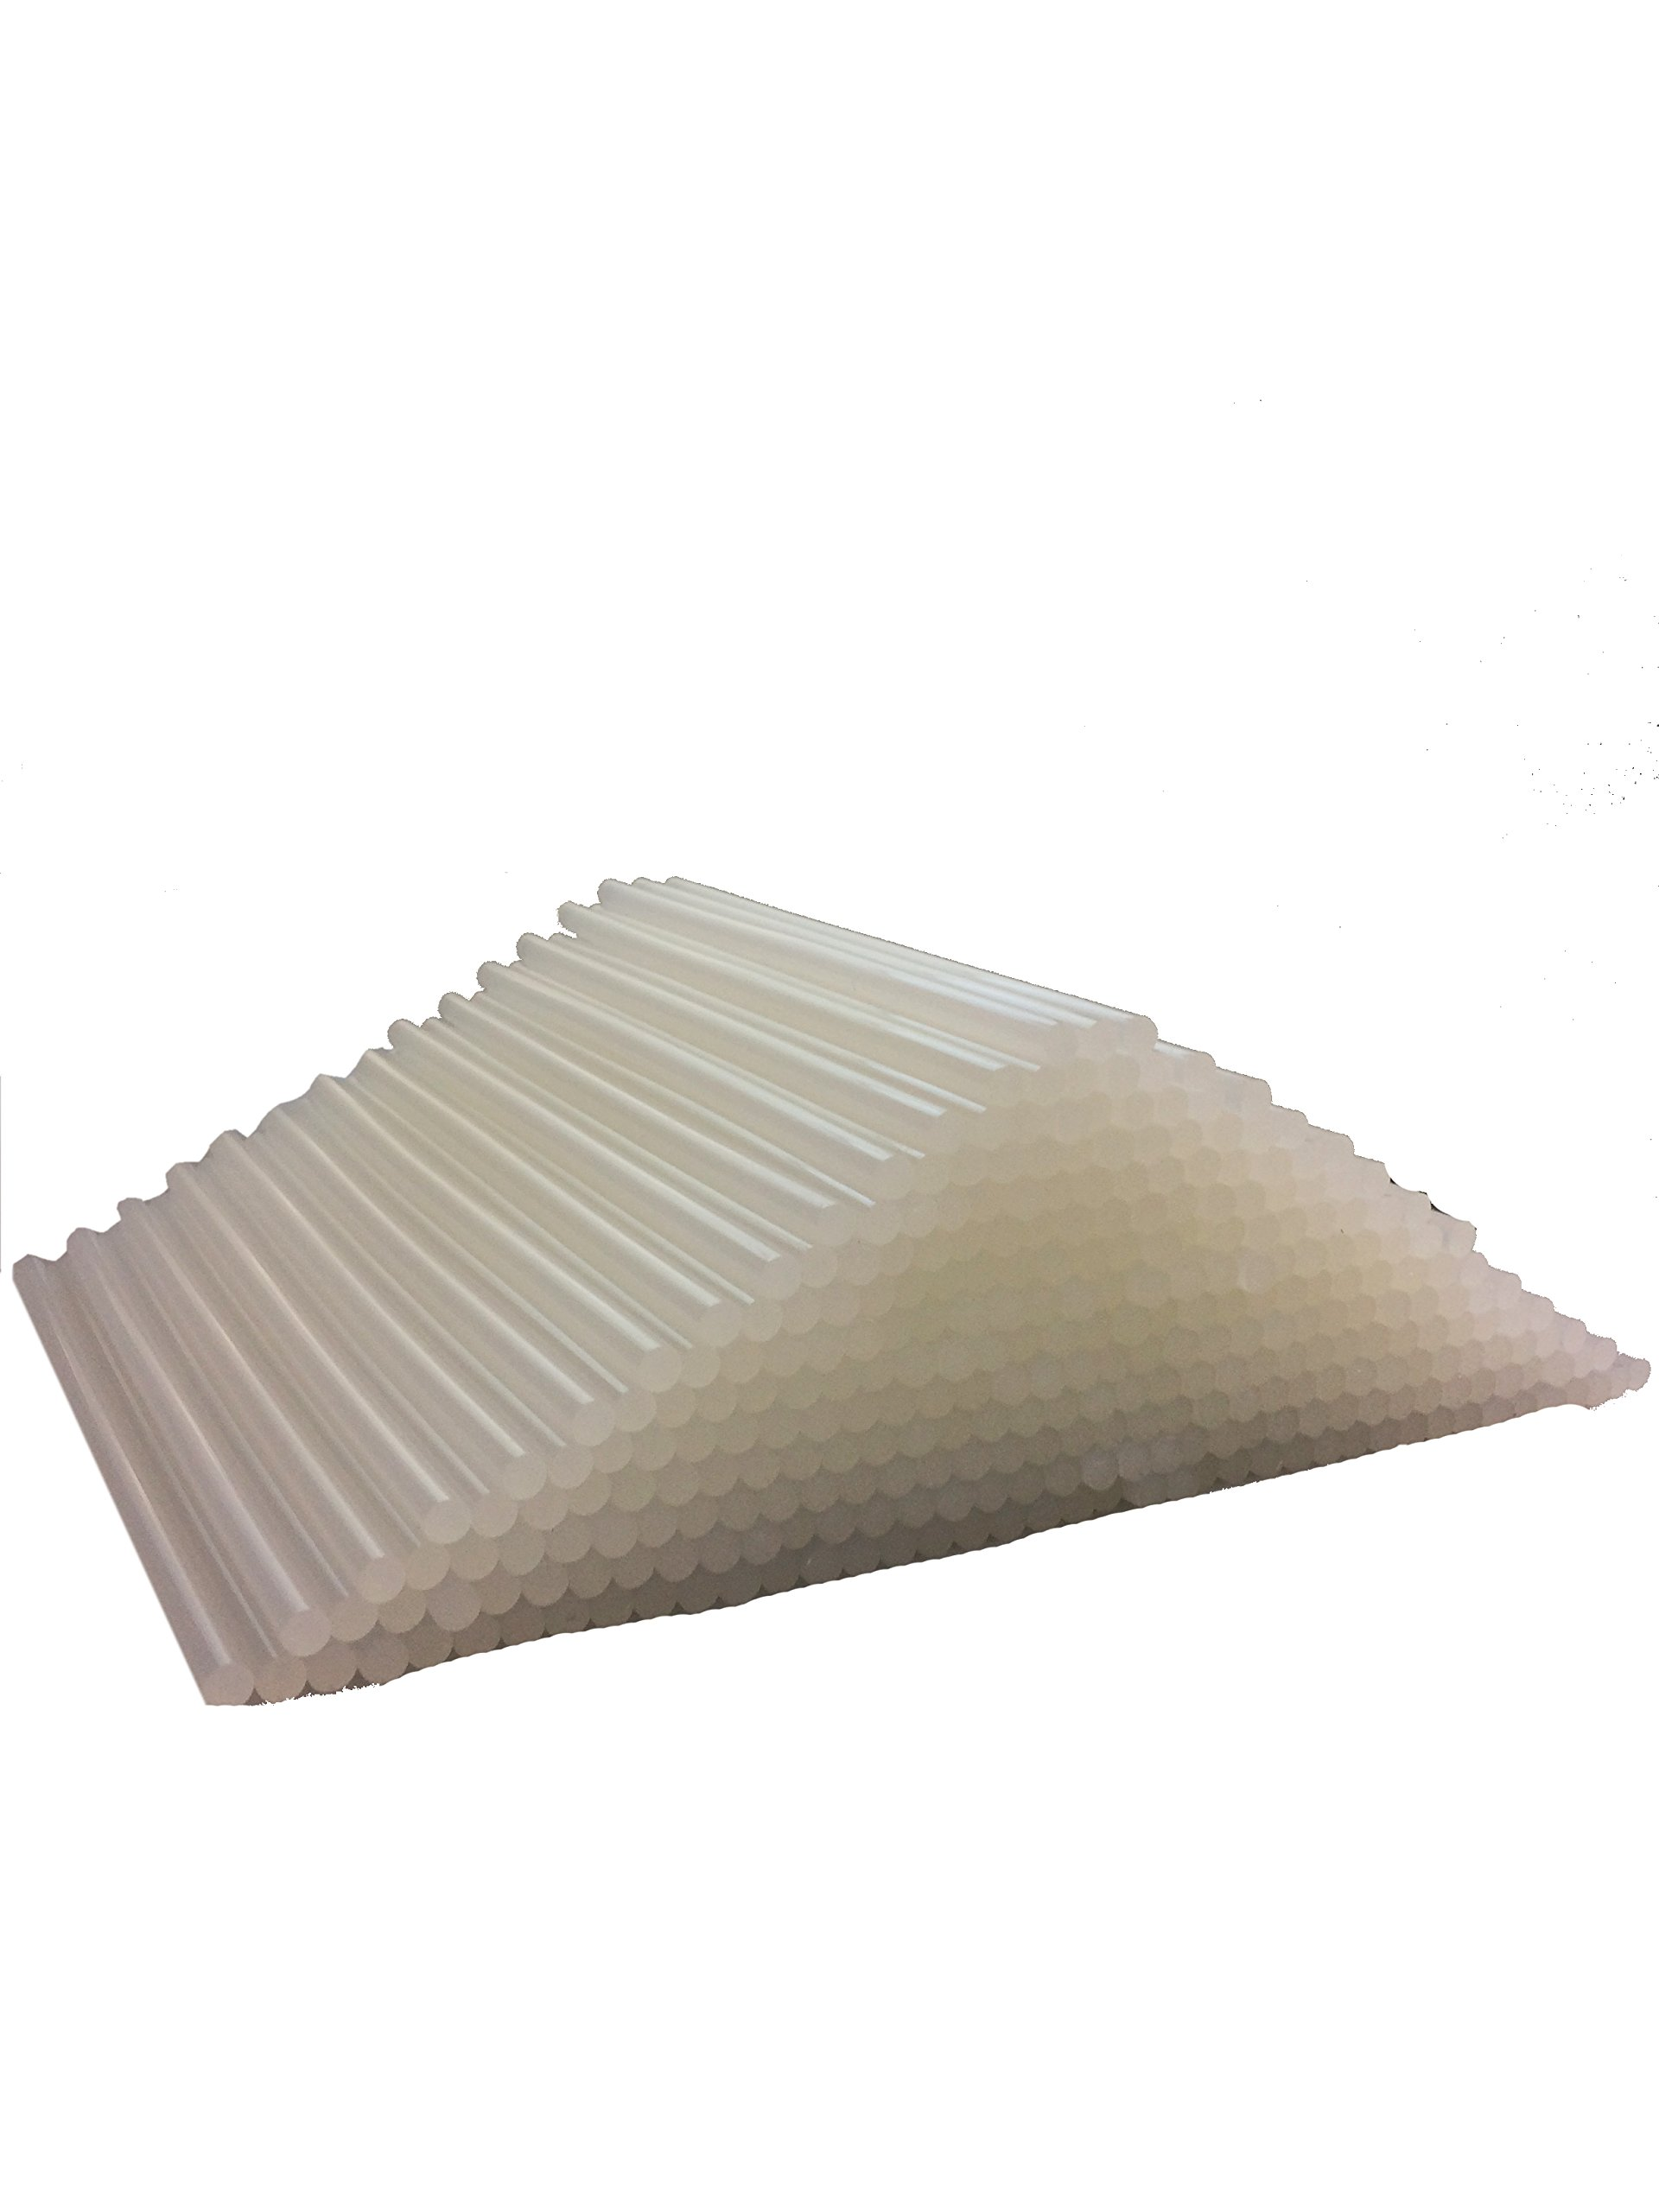 7 lbs or 25 lbs Clear Hot Melt Glue Sticks for Different Purposes - DIY Projects, Small Crafts, Sealing and Quick Repairs for Home or Office (.30'' x 8'' inches - 25 lbs)